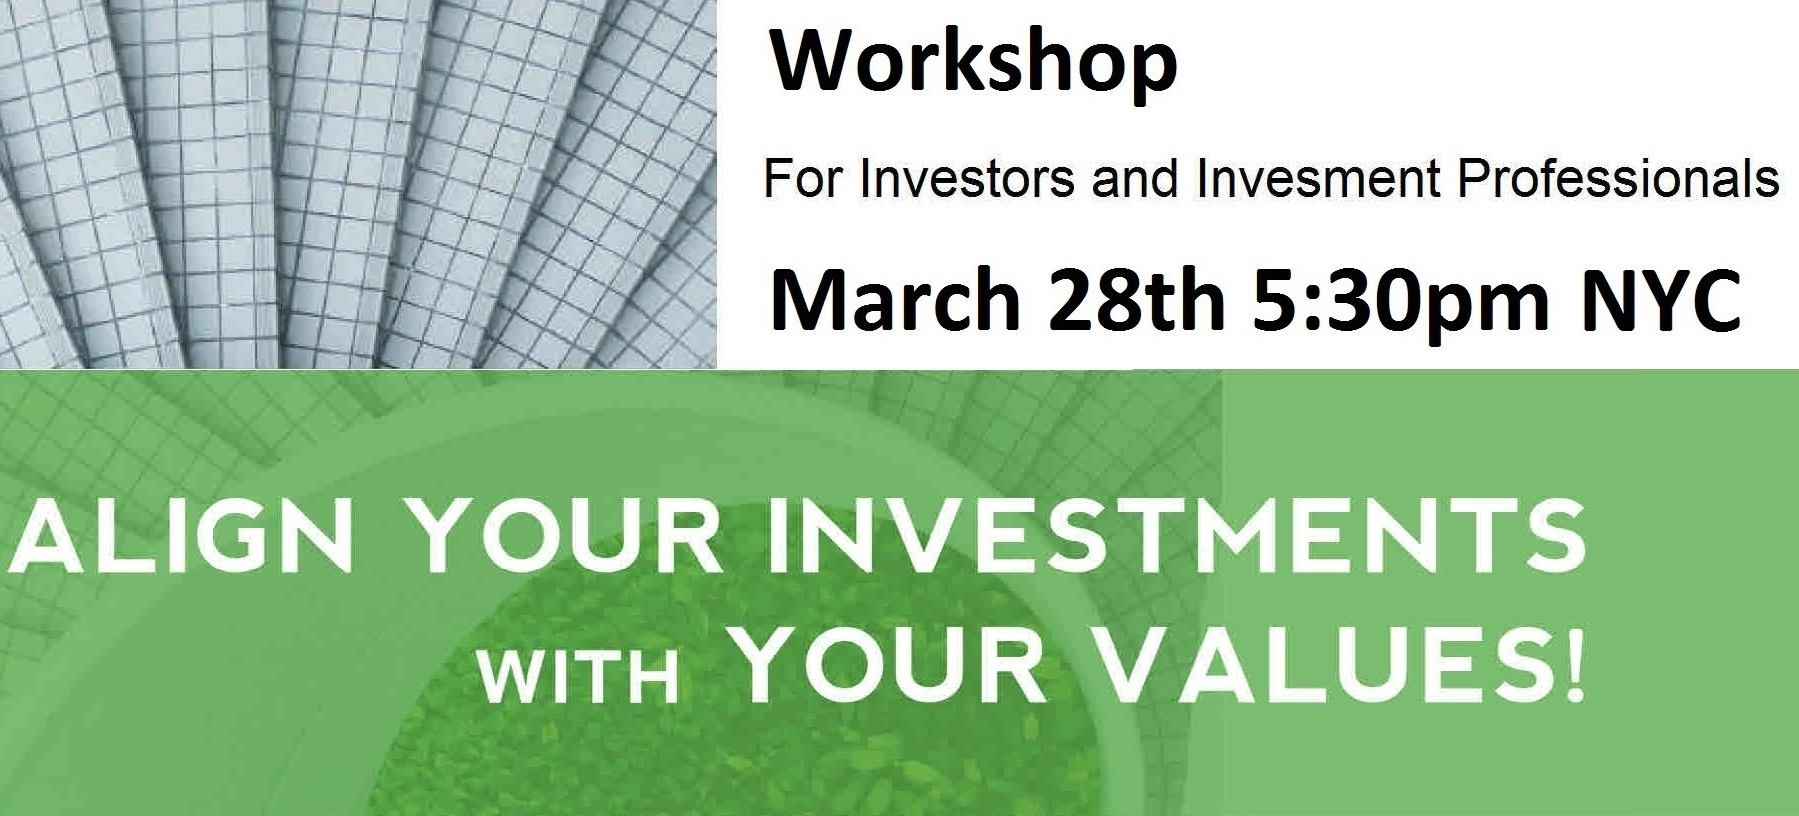 Align-Your-Investments-with-Your-Values-Workshop-2x1